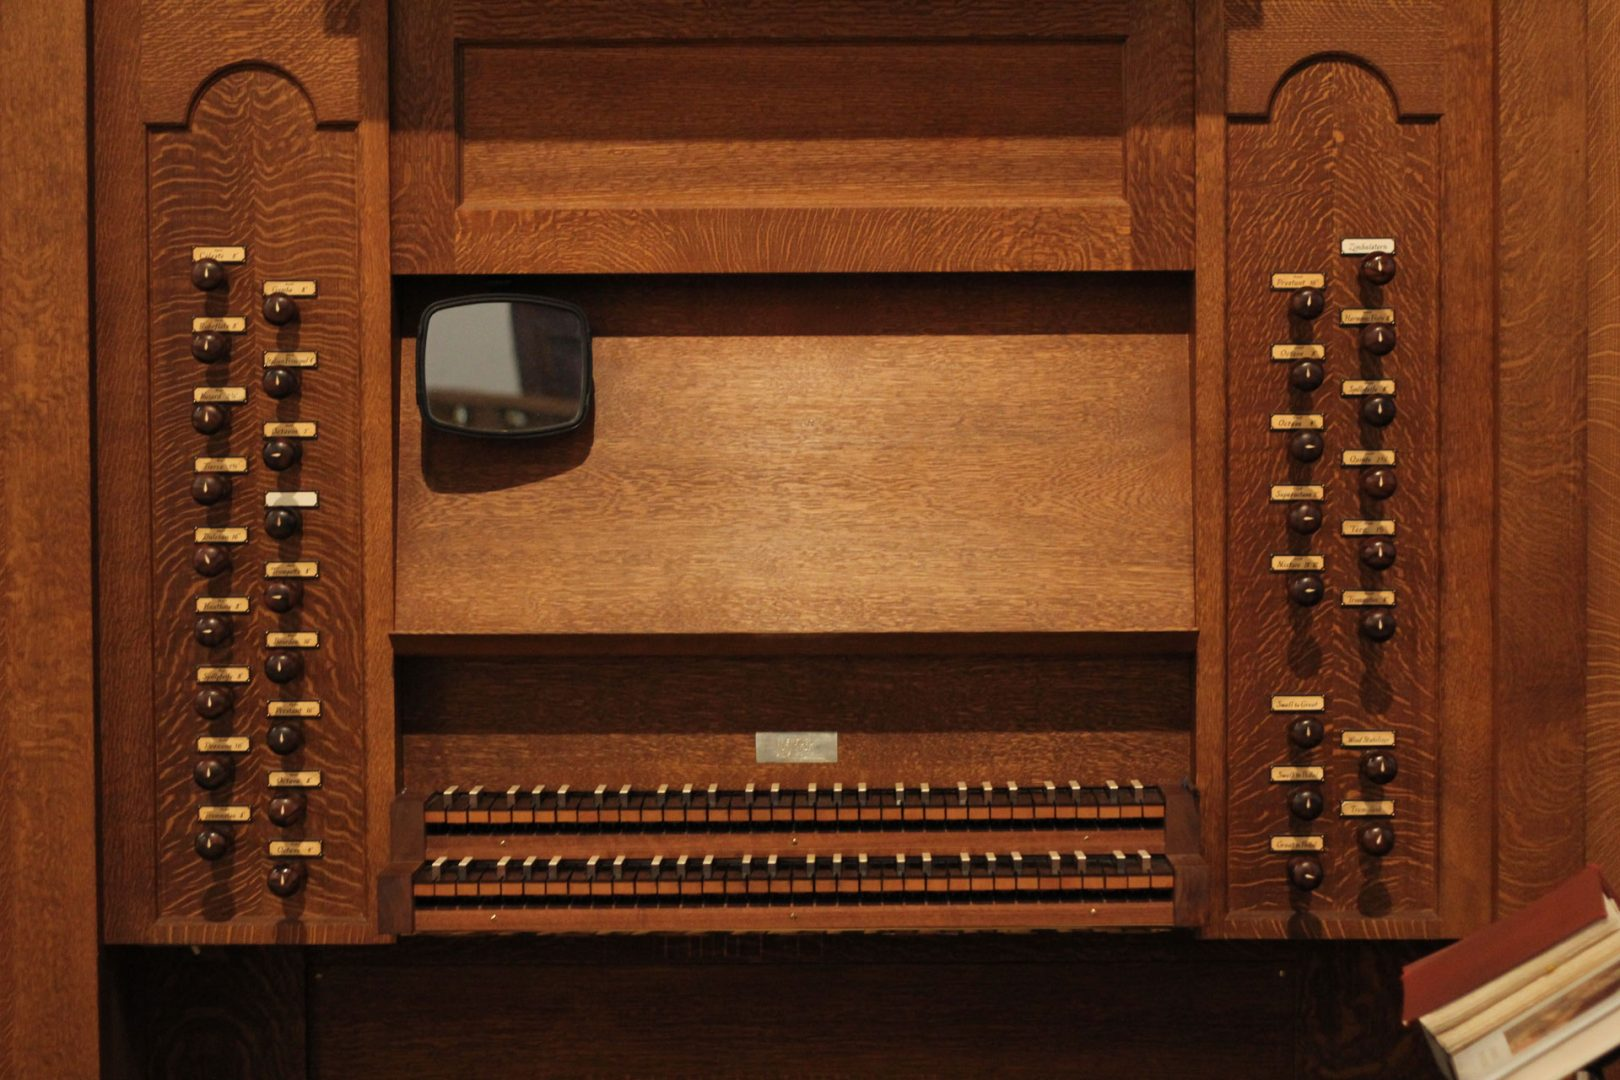 st-andrews-pipe-organ-03